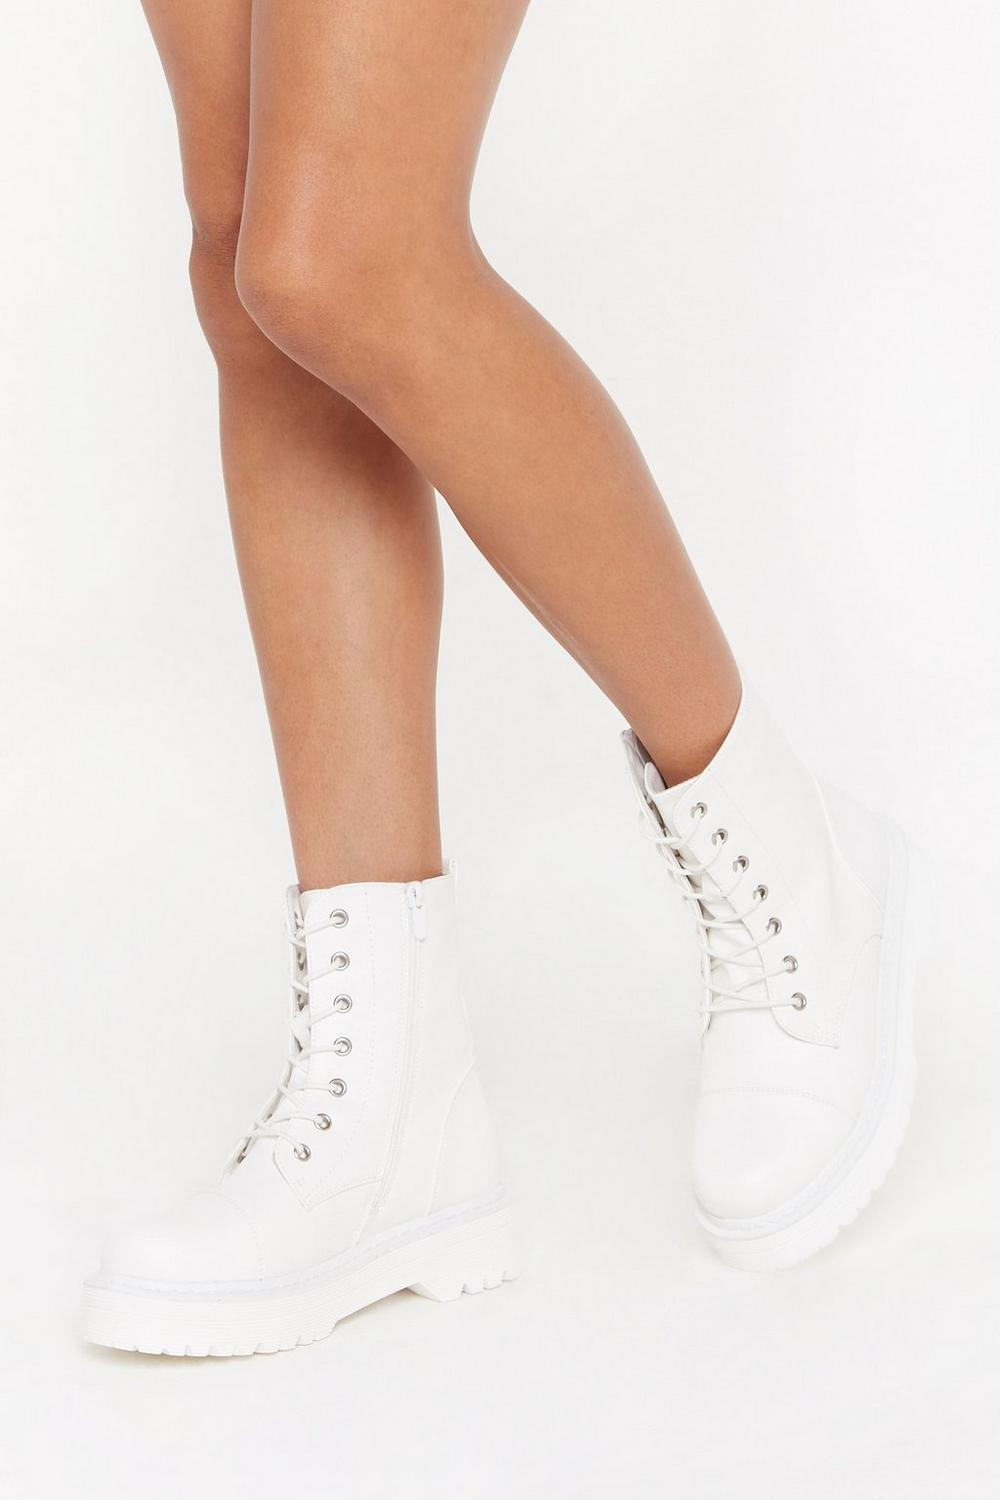 Step Up Your Game Lace Up Biker Boots by Nasty Gal